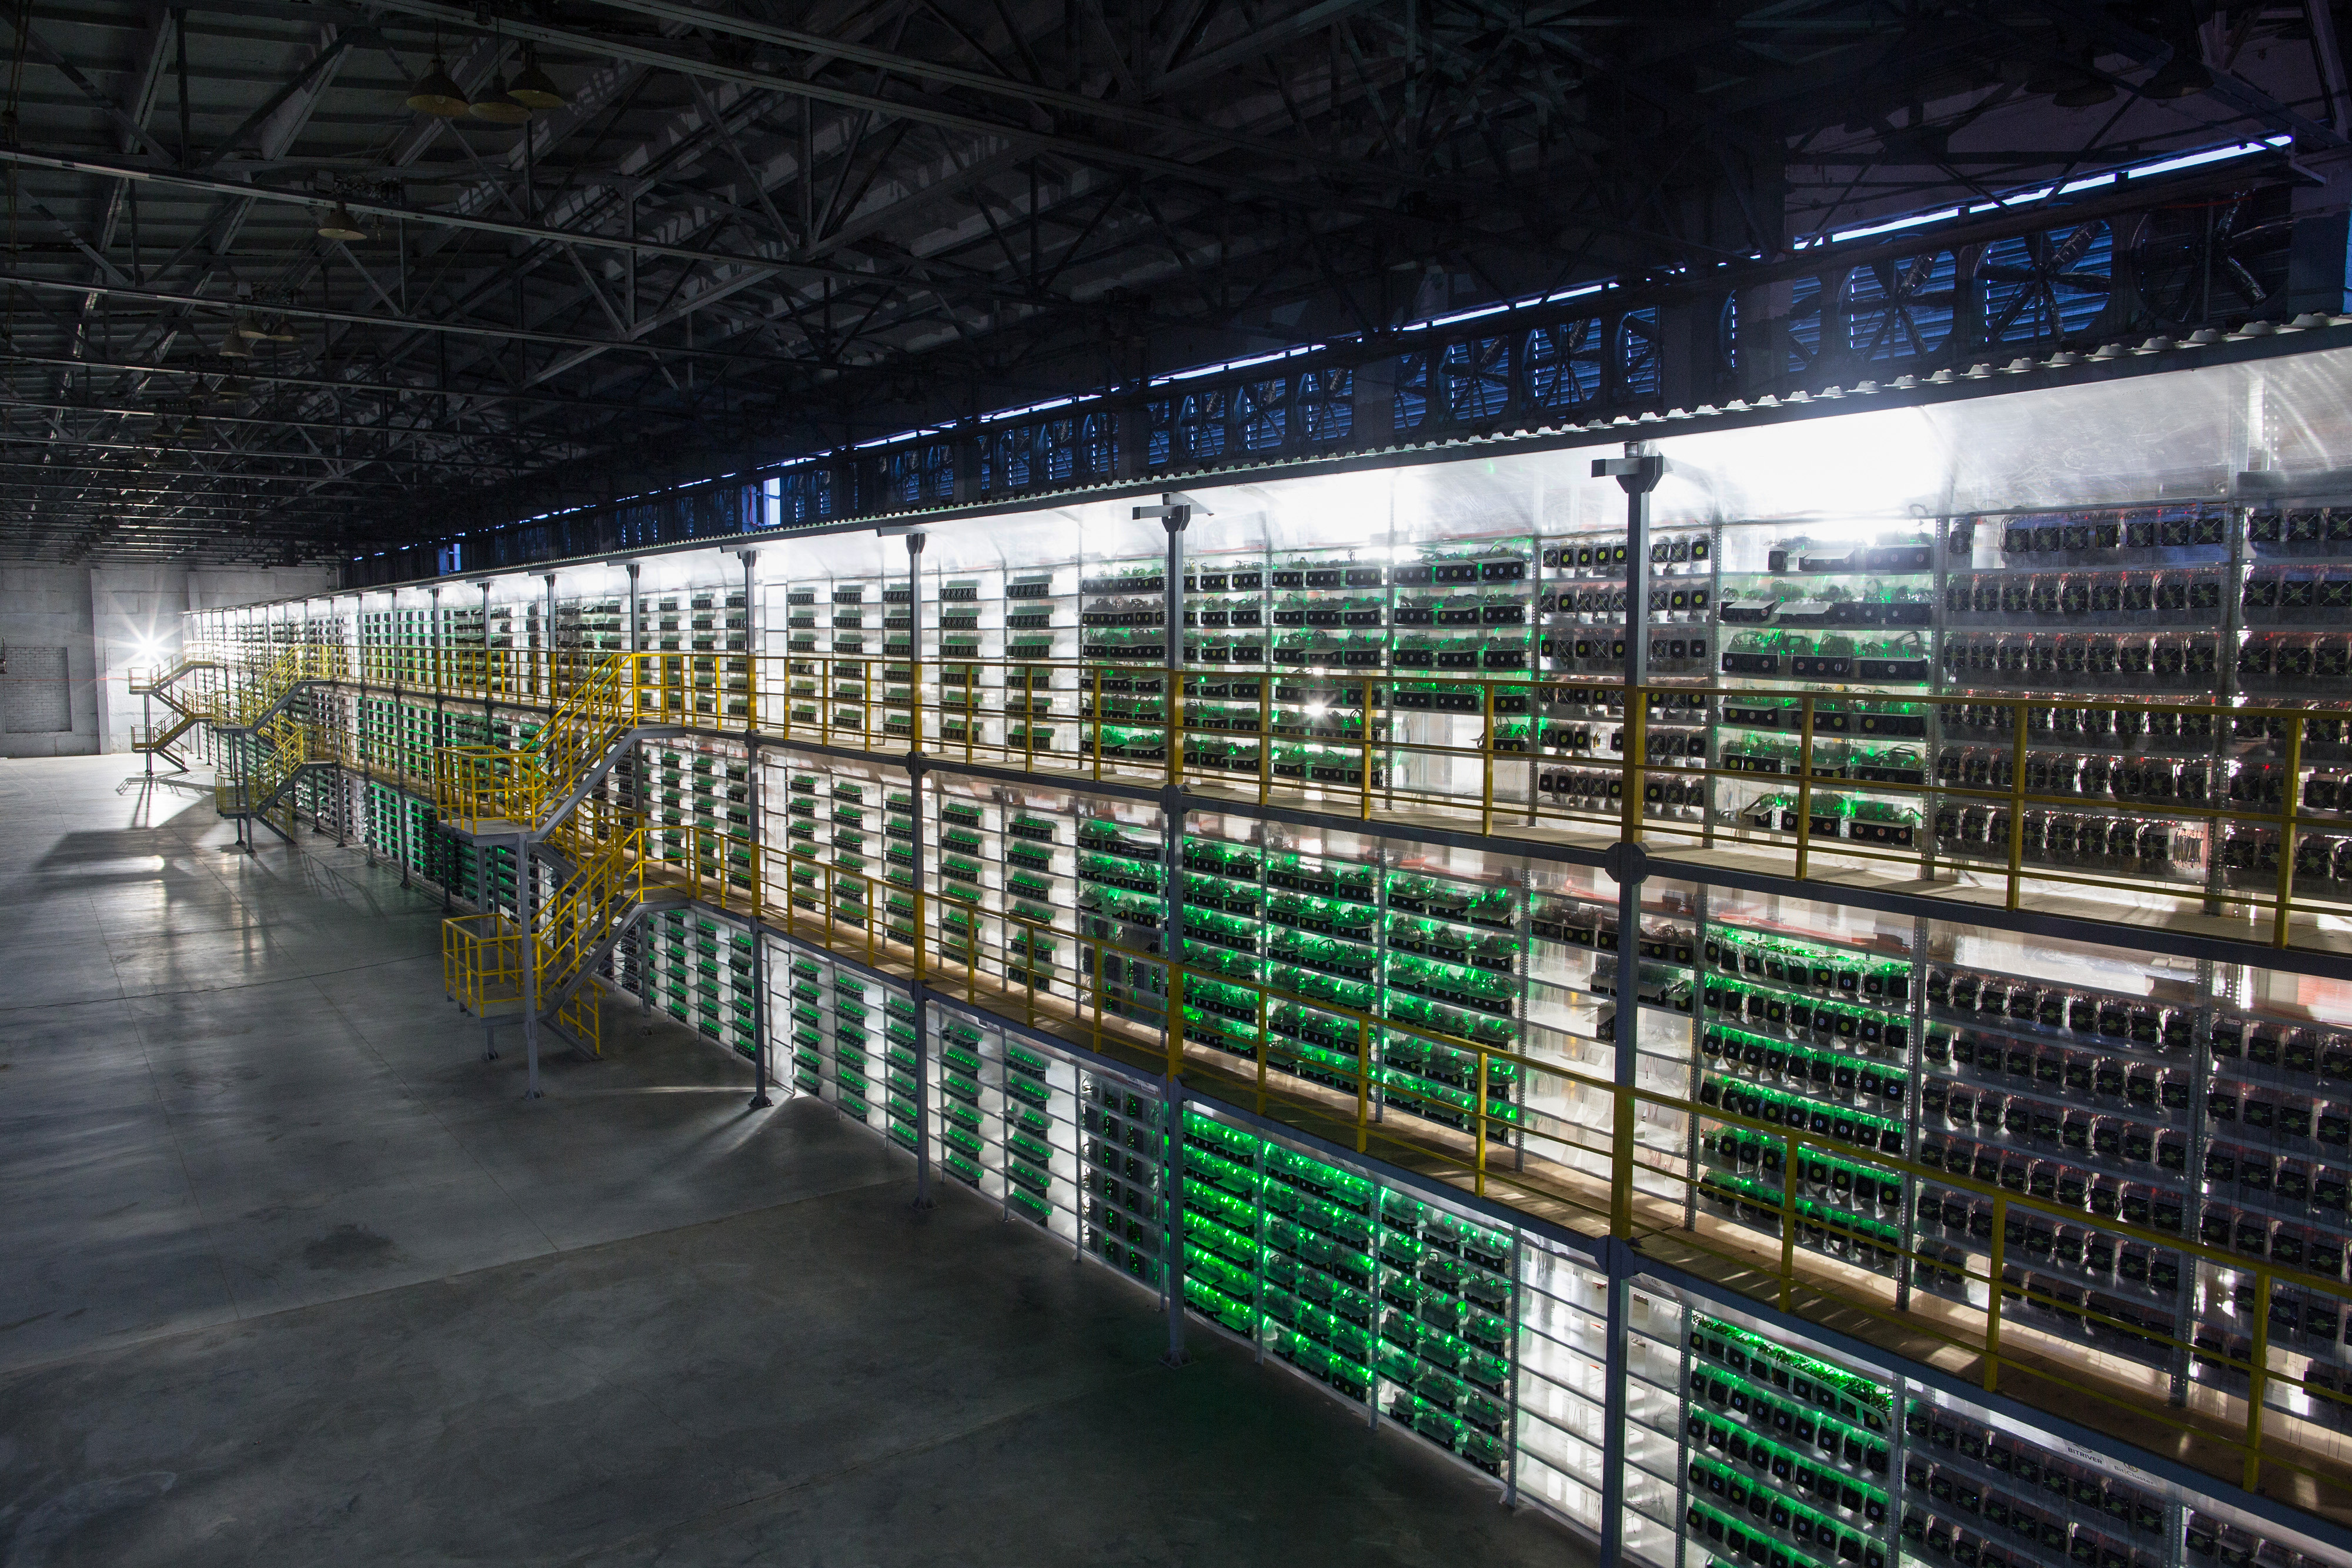 Russia's Largest Bitcoin Mine Turns Water Into Cash